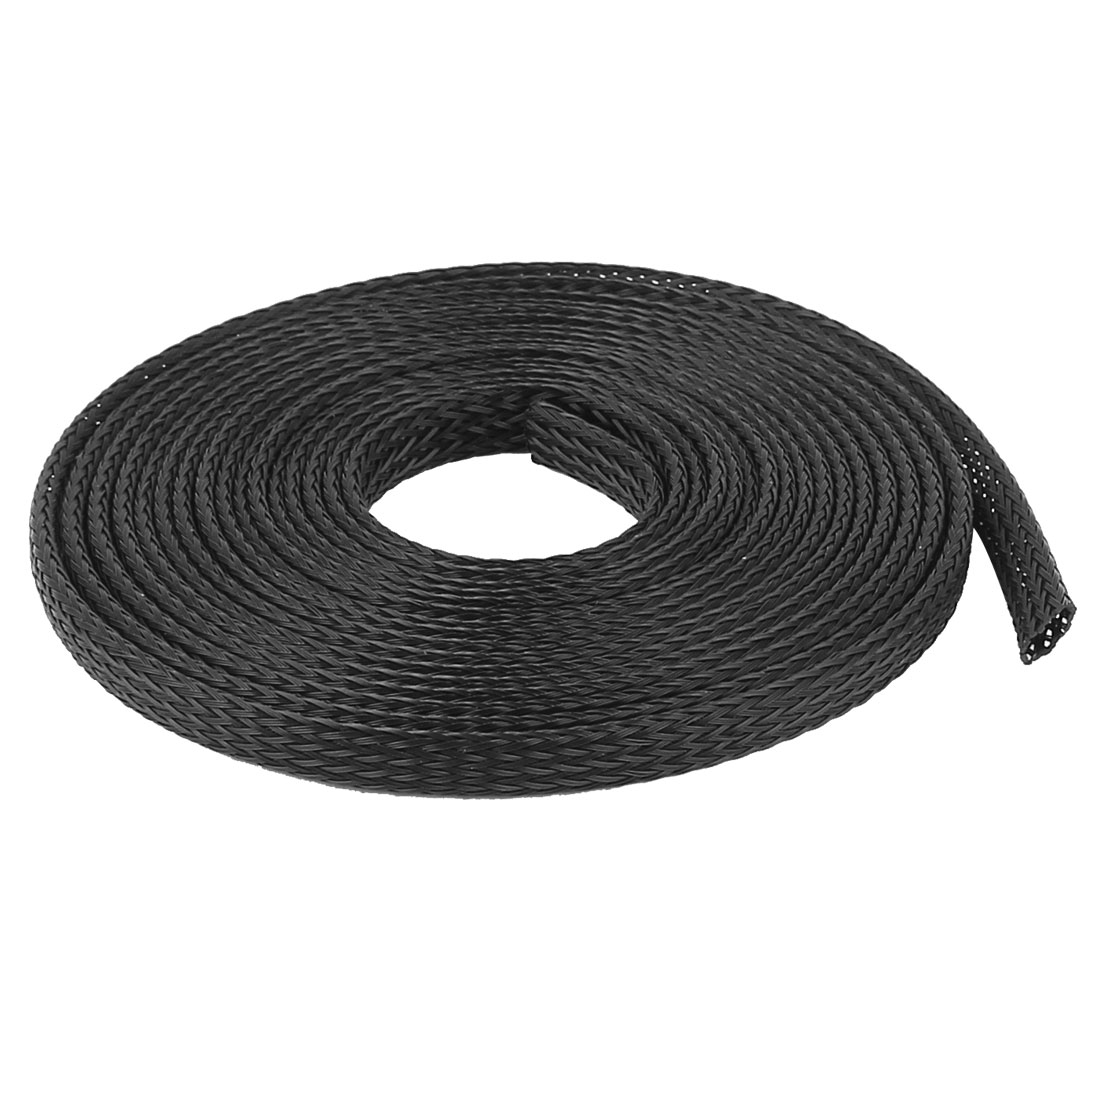 6mm PET Cable Wire Wrap Expandable Braided Sleeving 3 Meter